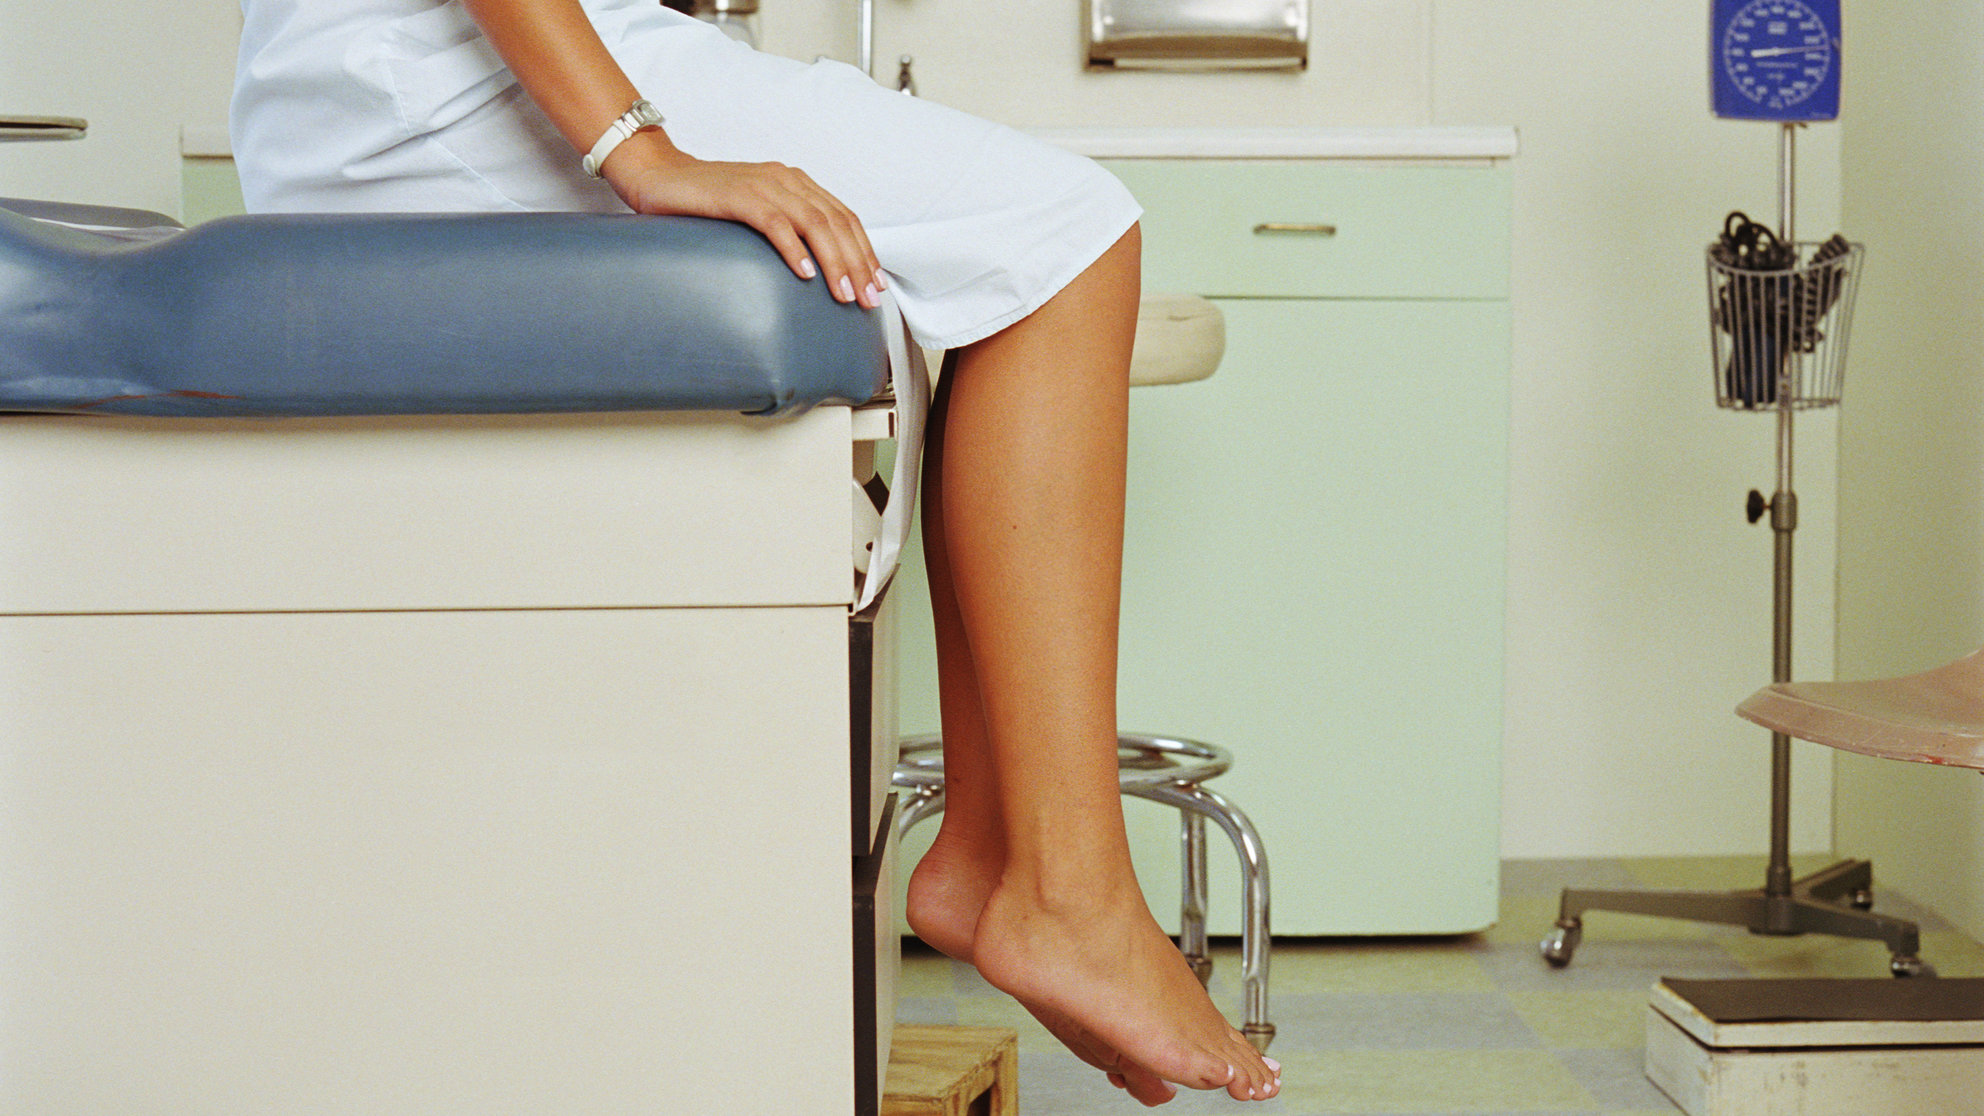 This May Be Why Women Are Far More Likely to Get Autoimmune Diseases